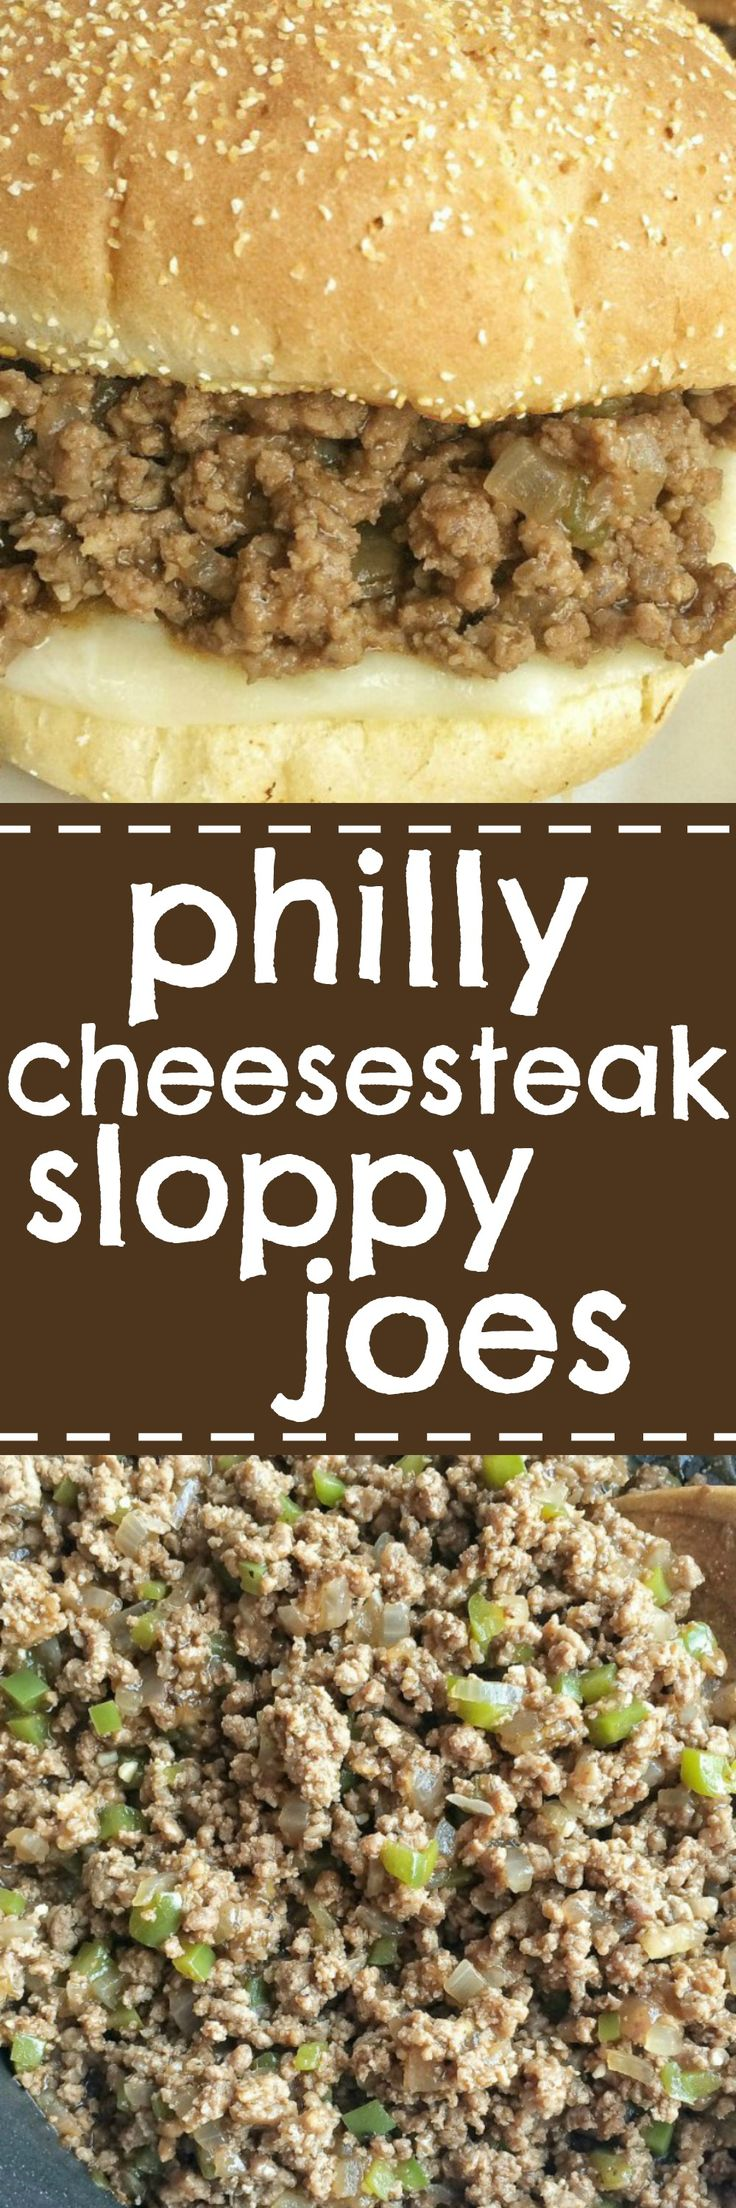 These philly cheesesteak sloppy joes are a fun twist to traditional sloppy joes. A perfectly seasoned ground beef mixture with beef broth, steak sauce, and steak seasoning. Toasted buns, melted provolone cheese, and the philly cheesesteak ground beef make these sloppy joes a family favorite dinner.